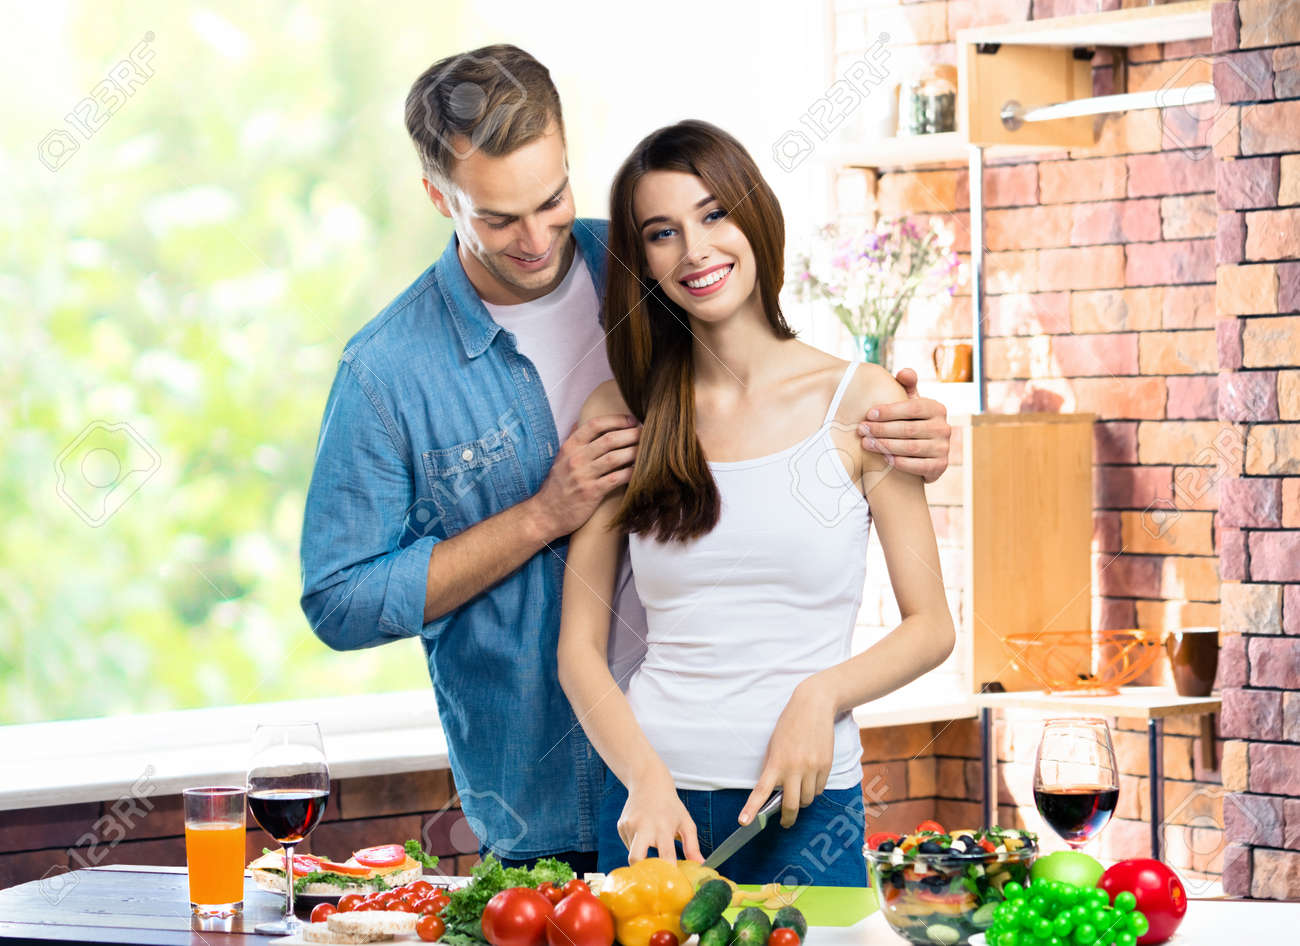 Image of happy amazed amorous couple cooking together at domestic kitchen with vegetarian healthy fresh food. Young family and healthy diet eating concept. - 171473217